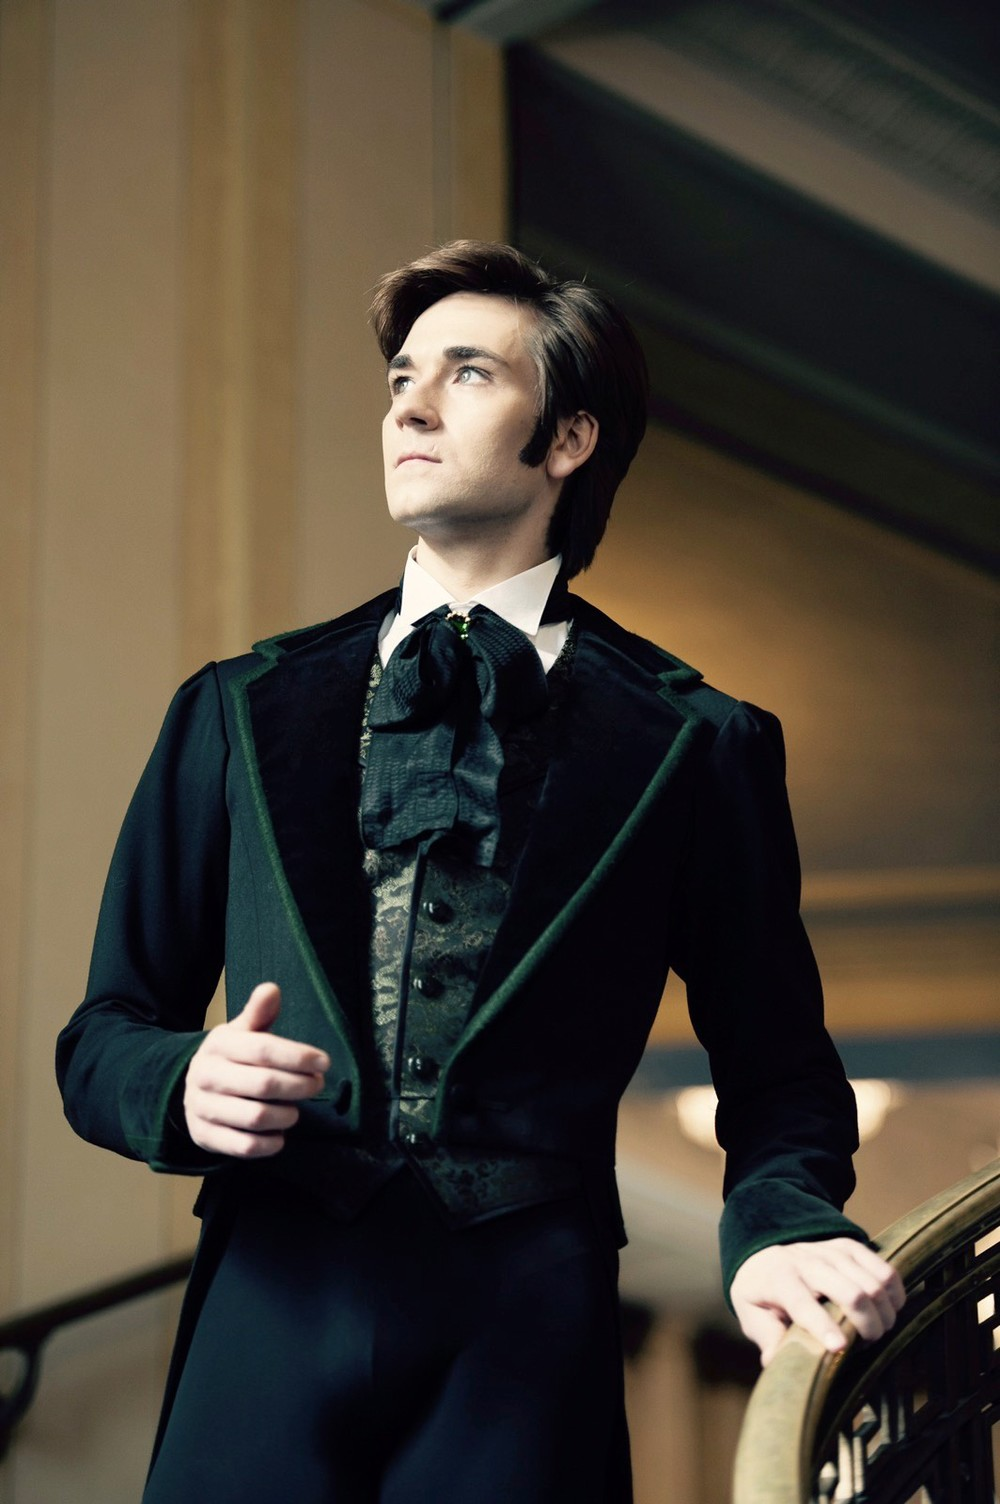 Friedemann Vogel as Onegin (c) Roman Novitzky